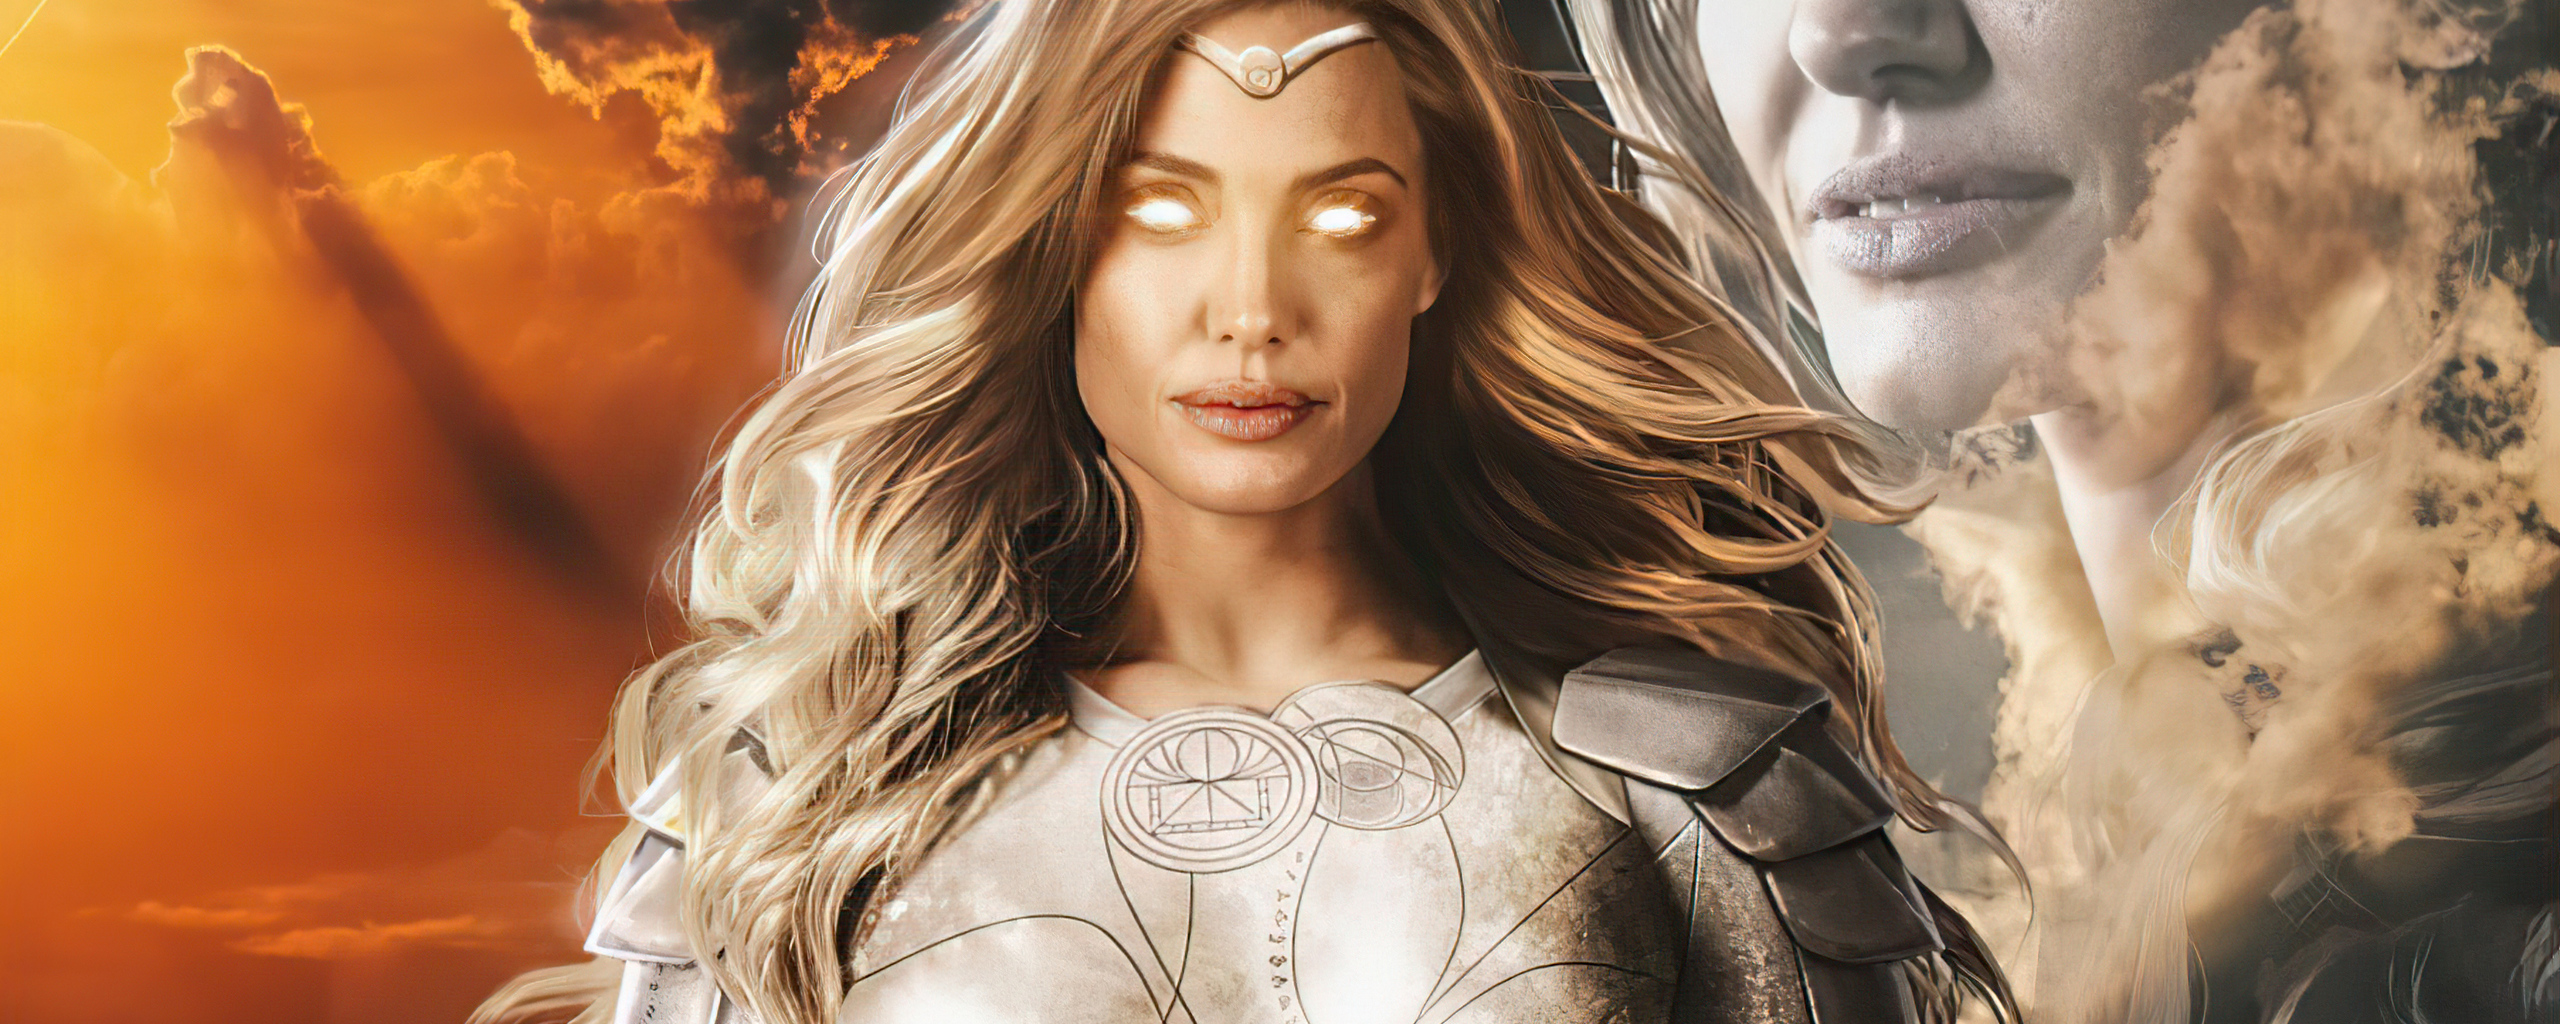 angelina-jolie-as-thena-in-the-eternals-4k-ba.jpg